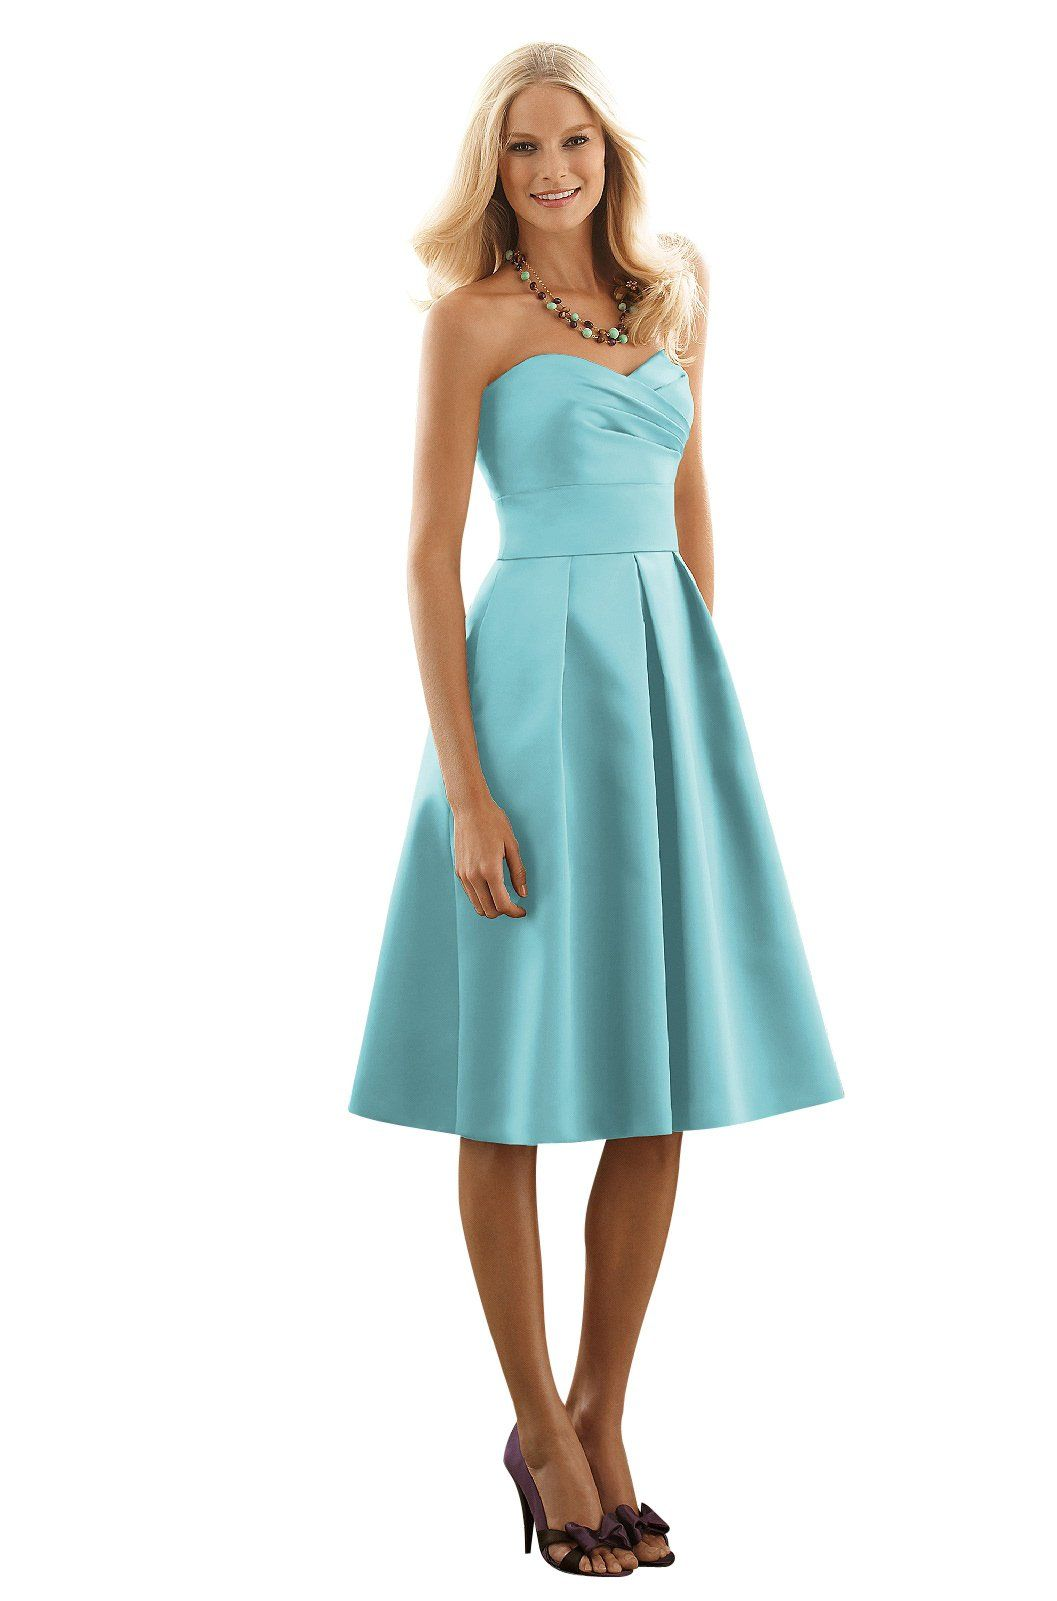 This ocean blue bridesmaid dress is beautiful but for my weddding i